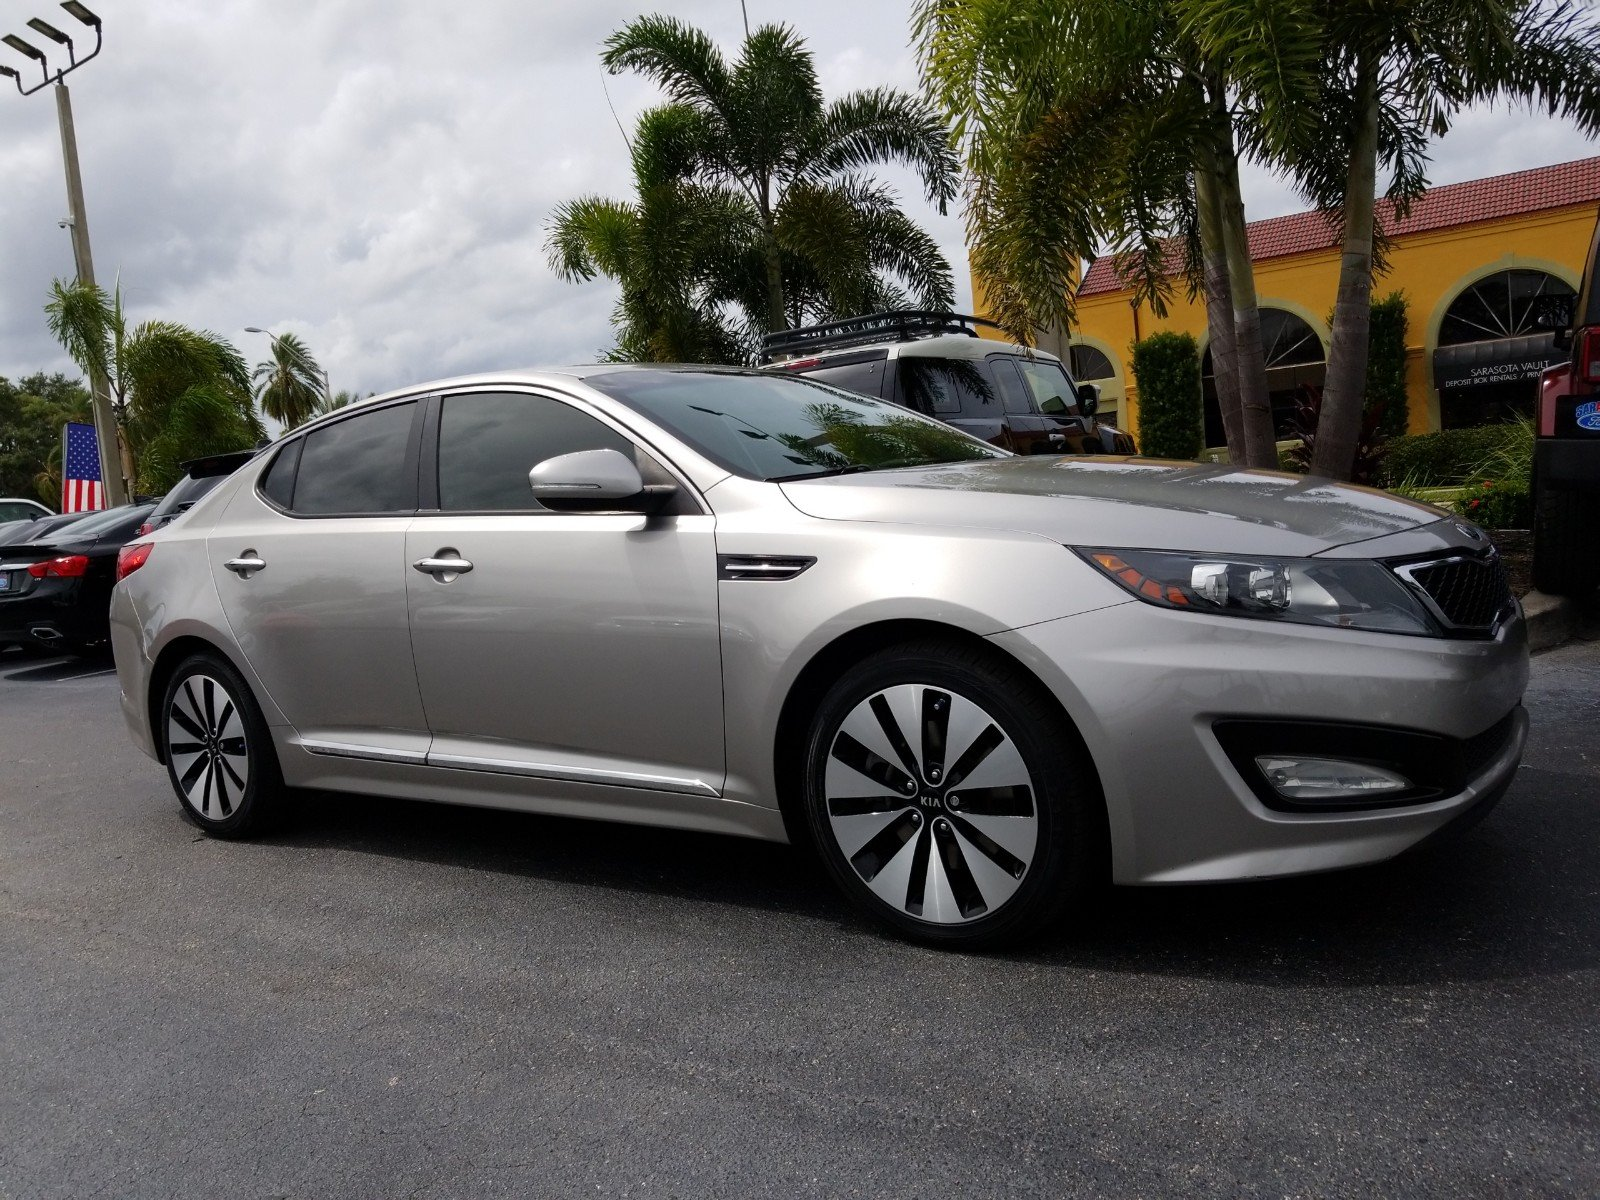 Pre Owned 2013 Kia Optima SX*LEATHER*TURBOCHARGED*LOW MILES*WARRANTY